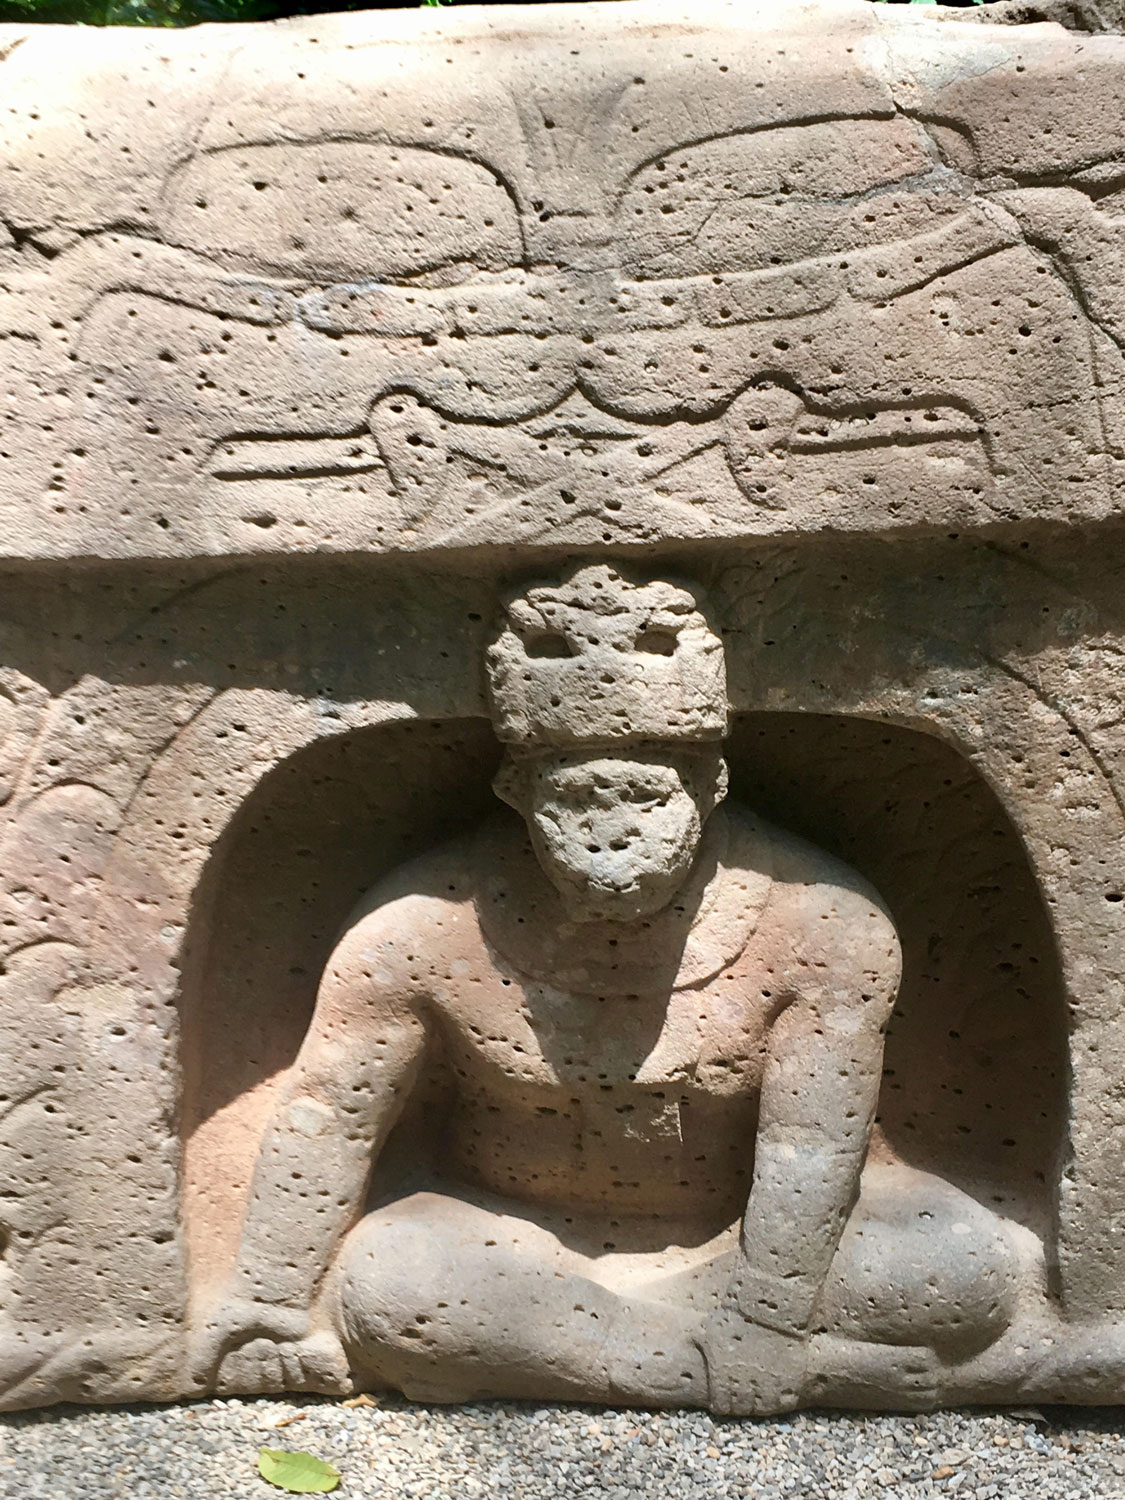 Altar 4, La Venta Olmec park museum. Two heads of serpents face each other above a man emerging from a cave.